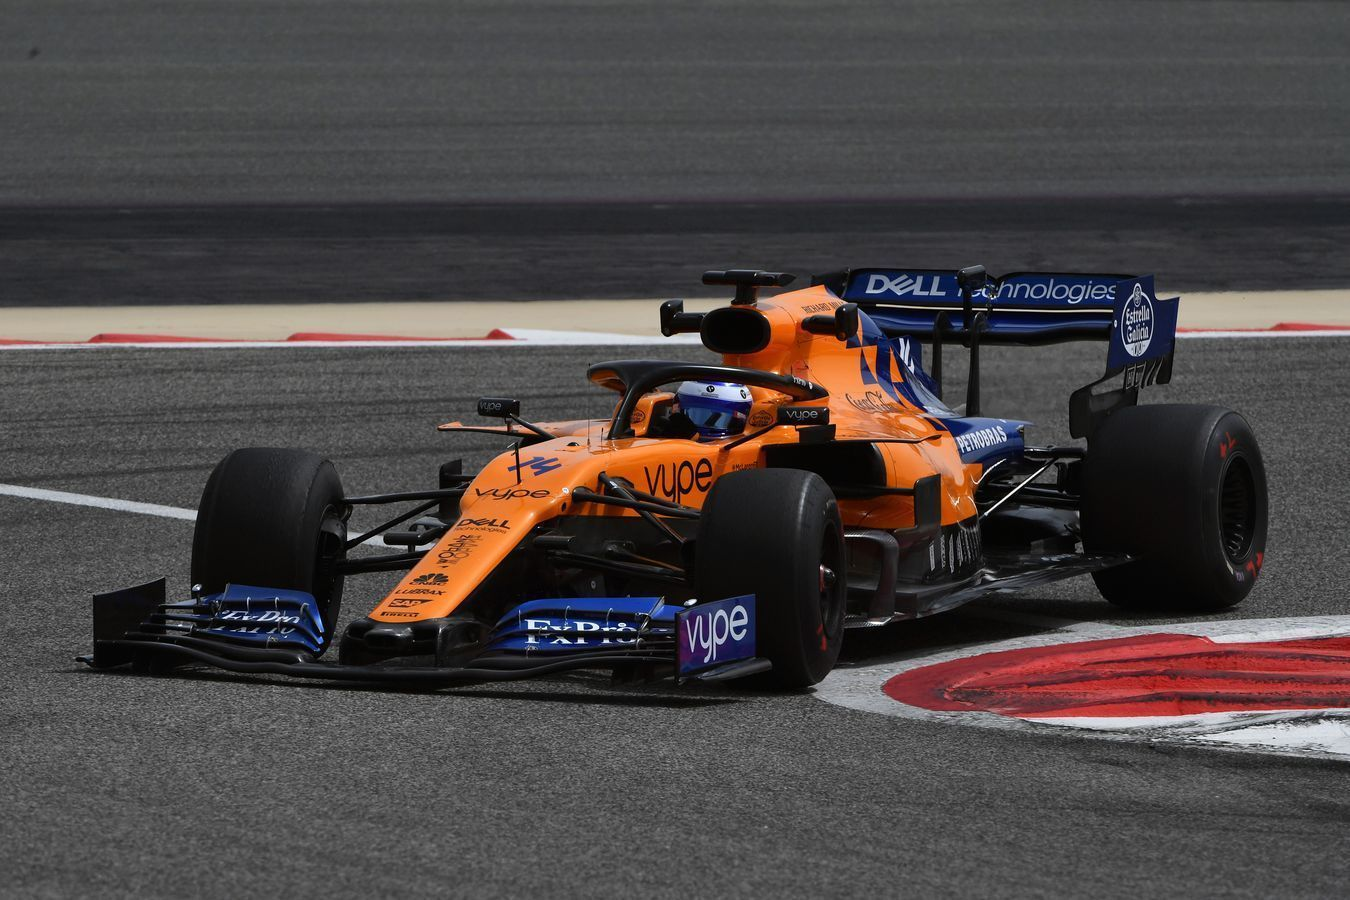 Fernando Alonso F1 Grand Prix Alonso Lauds 2019 Mclaren Car And Renault F1 Engine After First Run